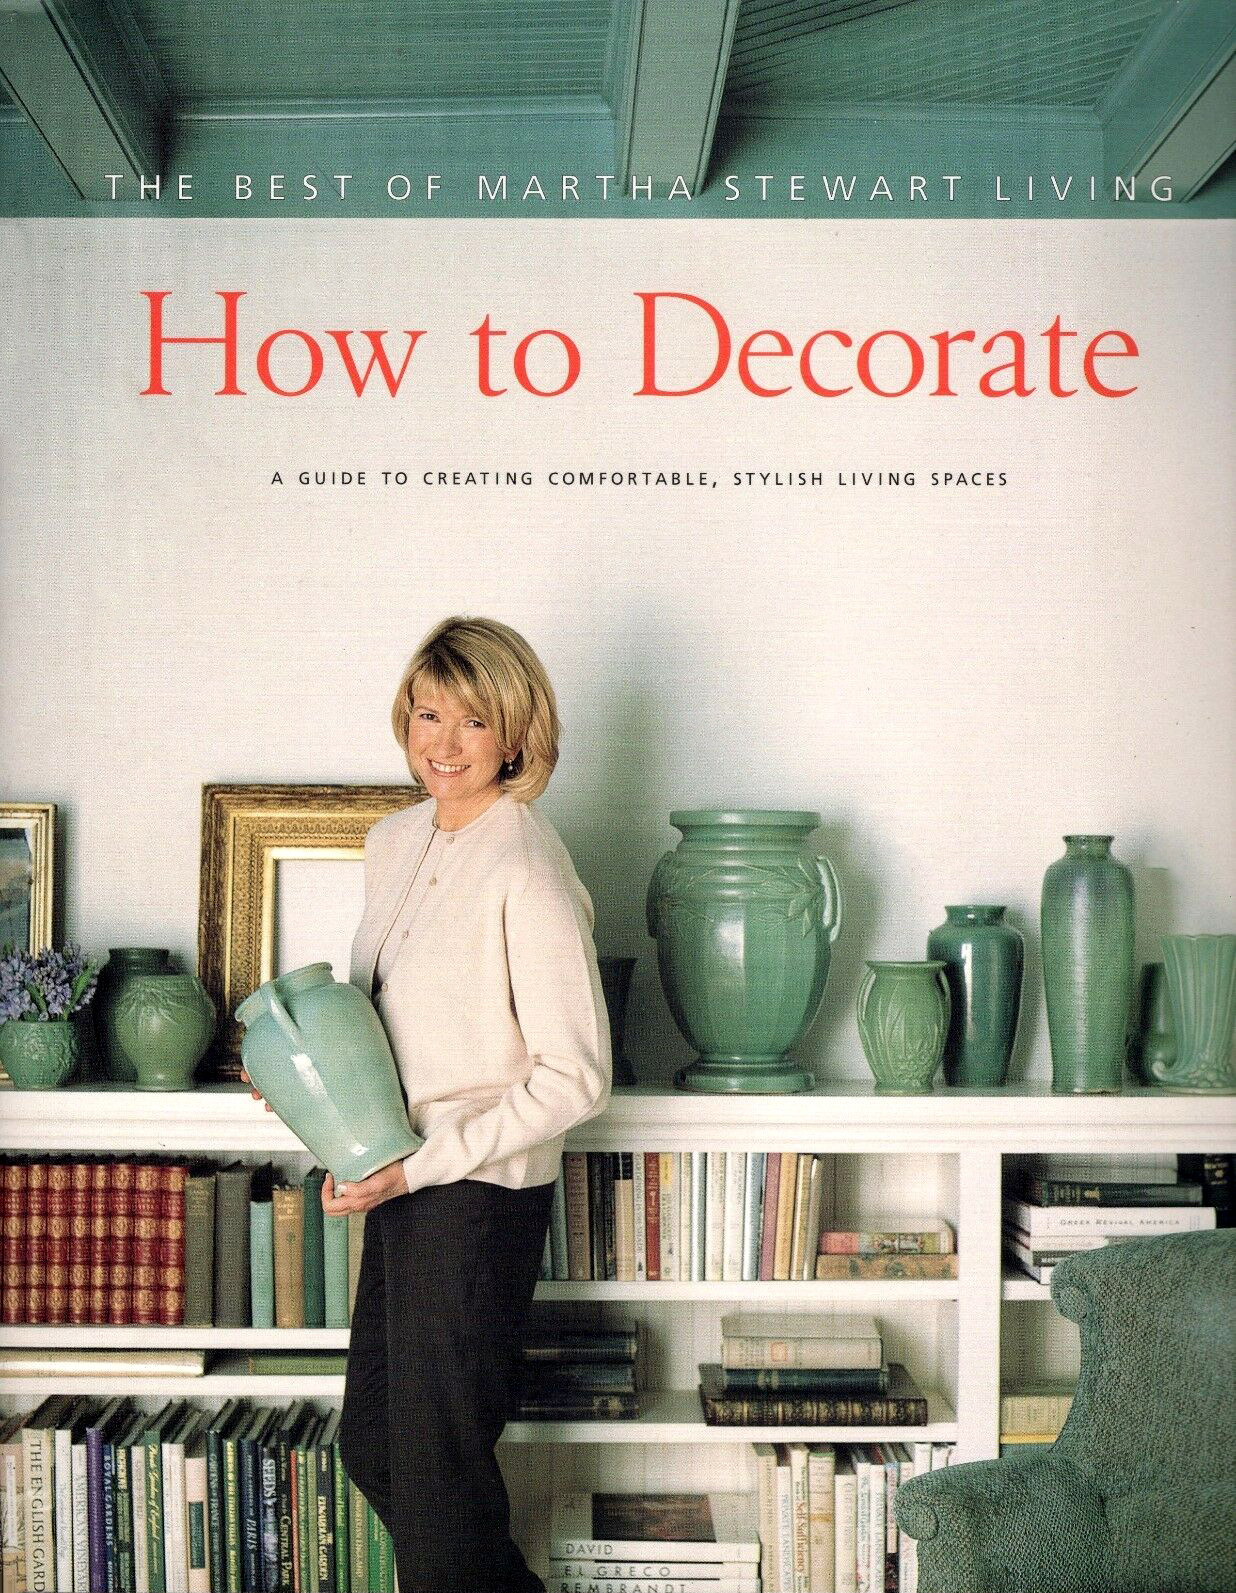 The Best of Martha Stewart Living How to Decorate 1996 book cover